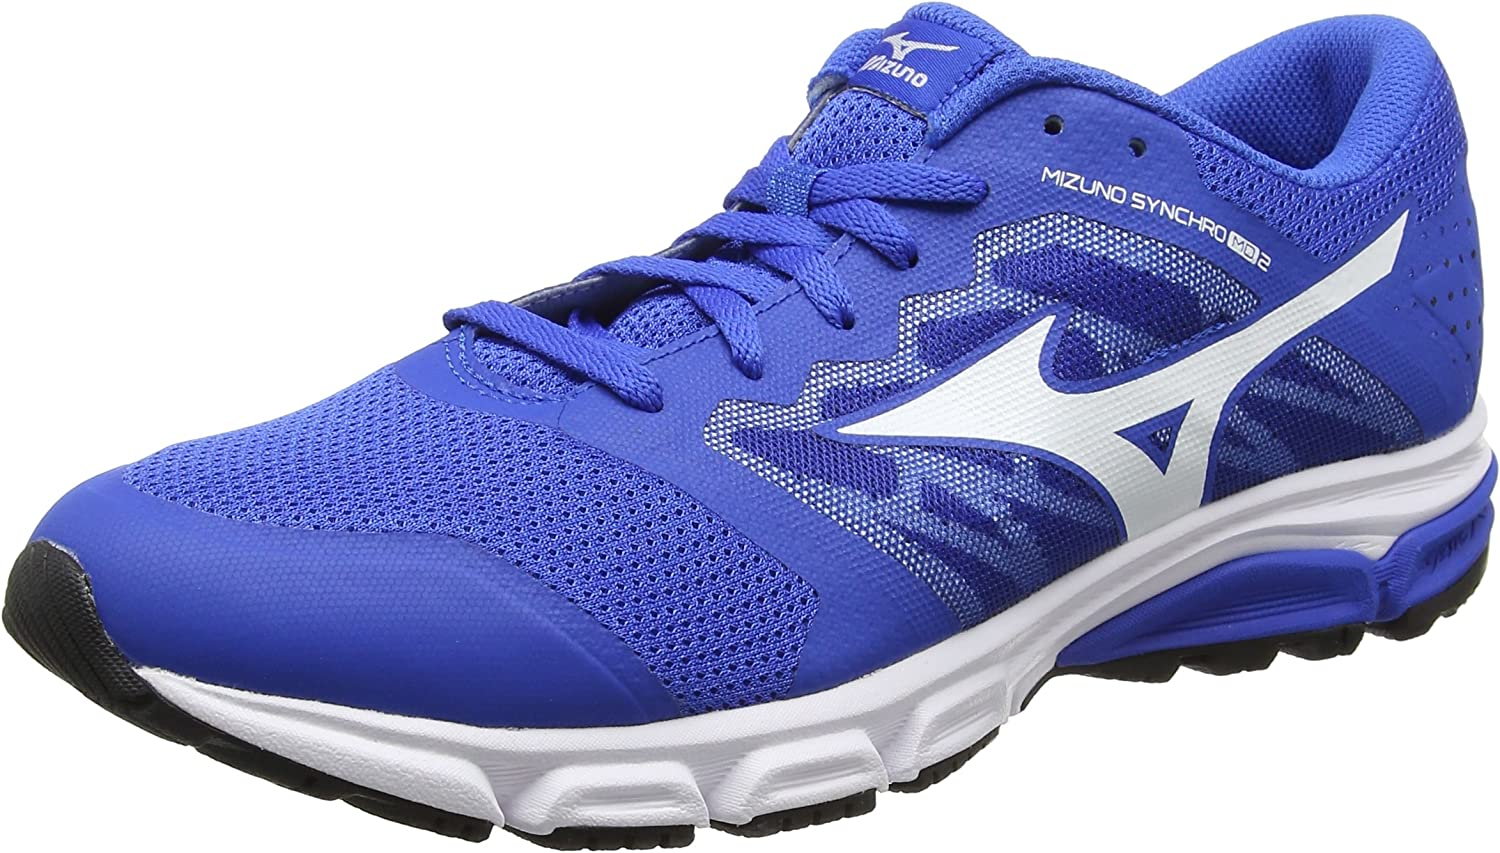 Mizuno Synchro MD 2, Zapatillas de Running para Hombre, Azul (Strong Blue/White/Black), 40.5 EU: Amazon.es: Zapatos y complementos